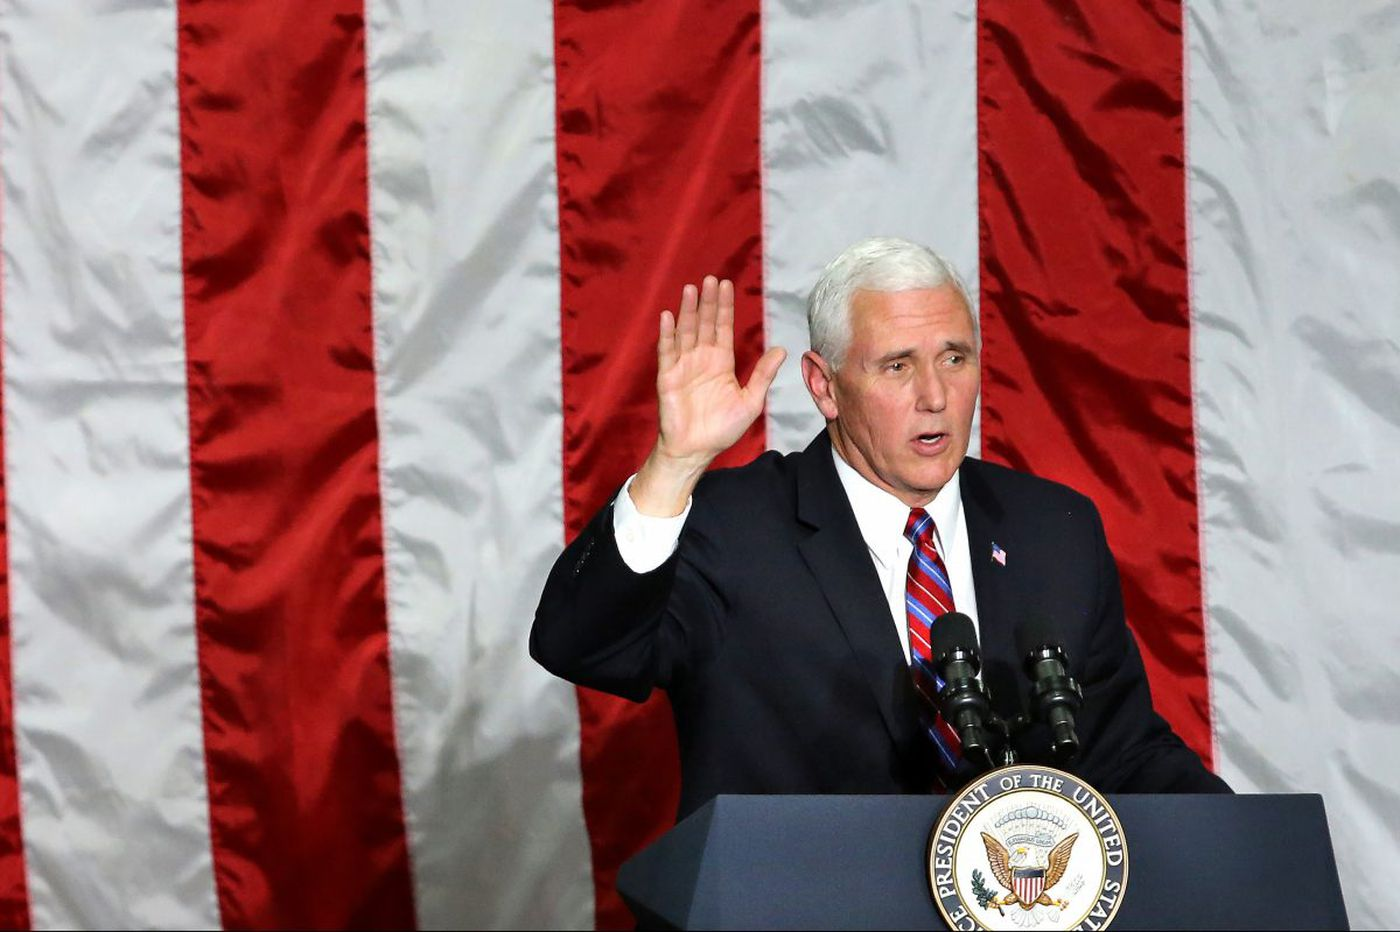 Pence to headline marquee GOP event at Pennsylvania Society